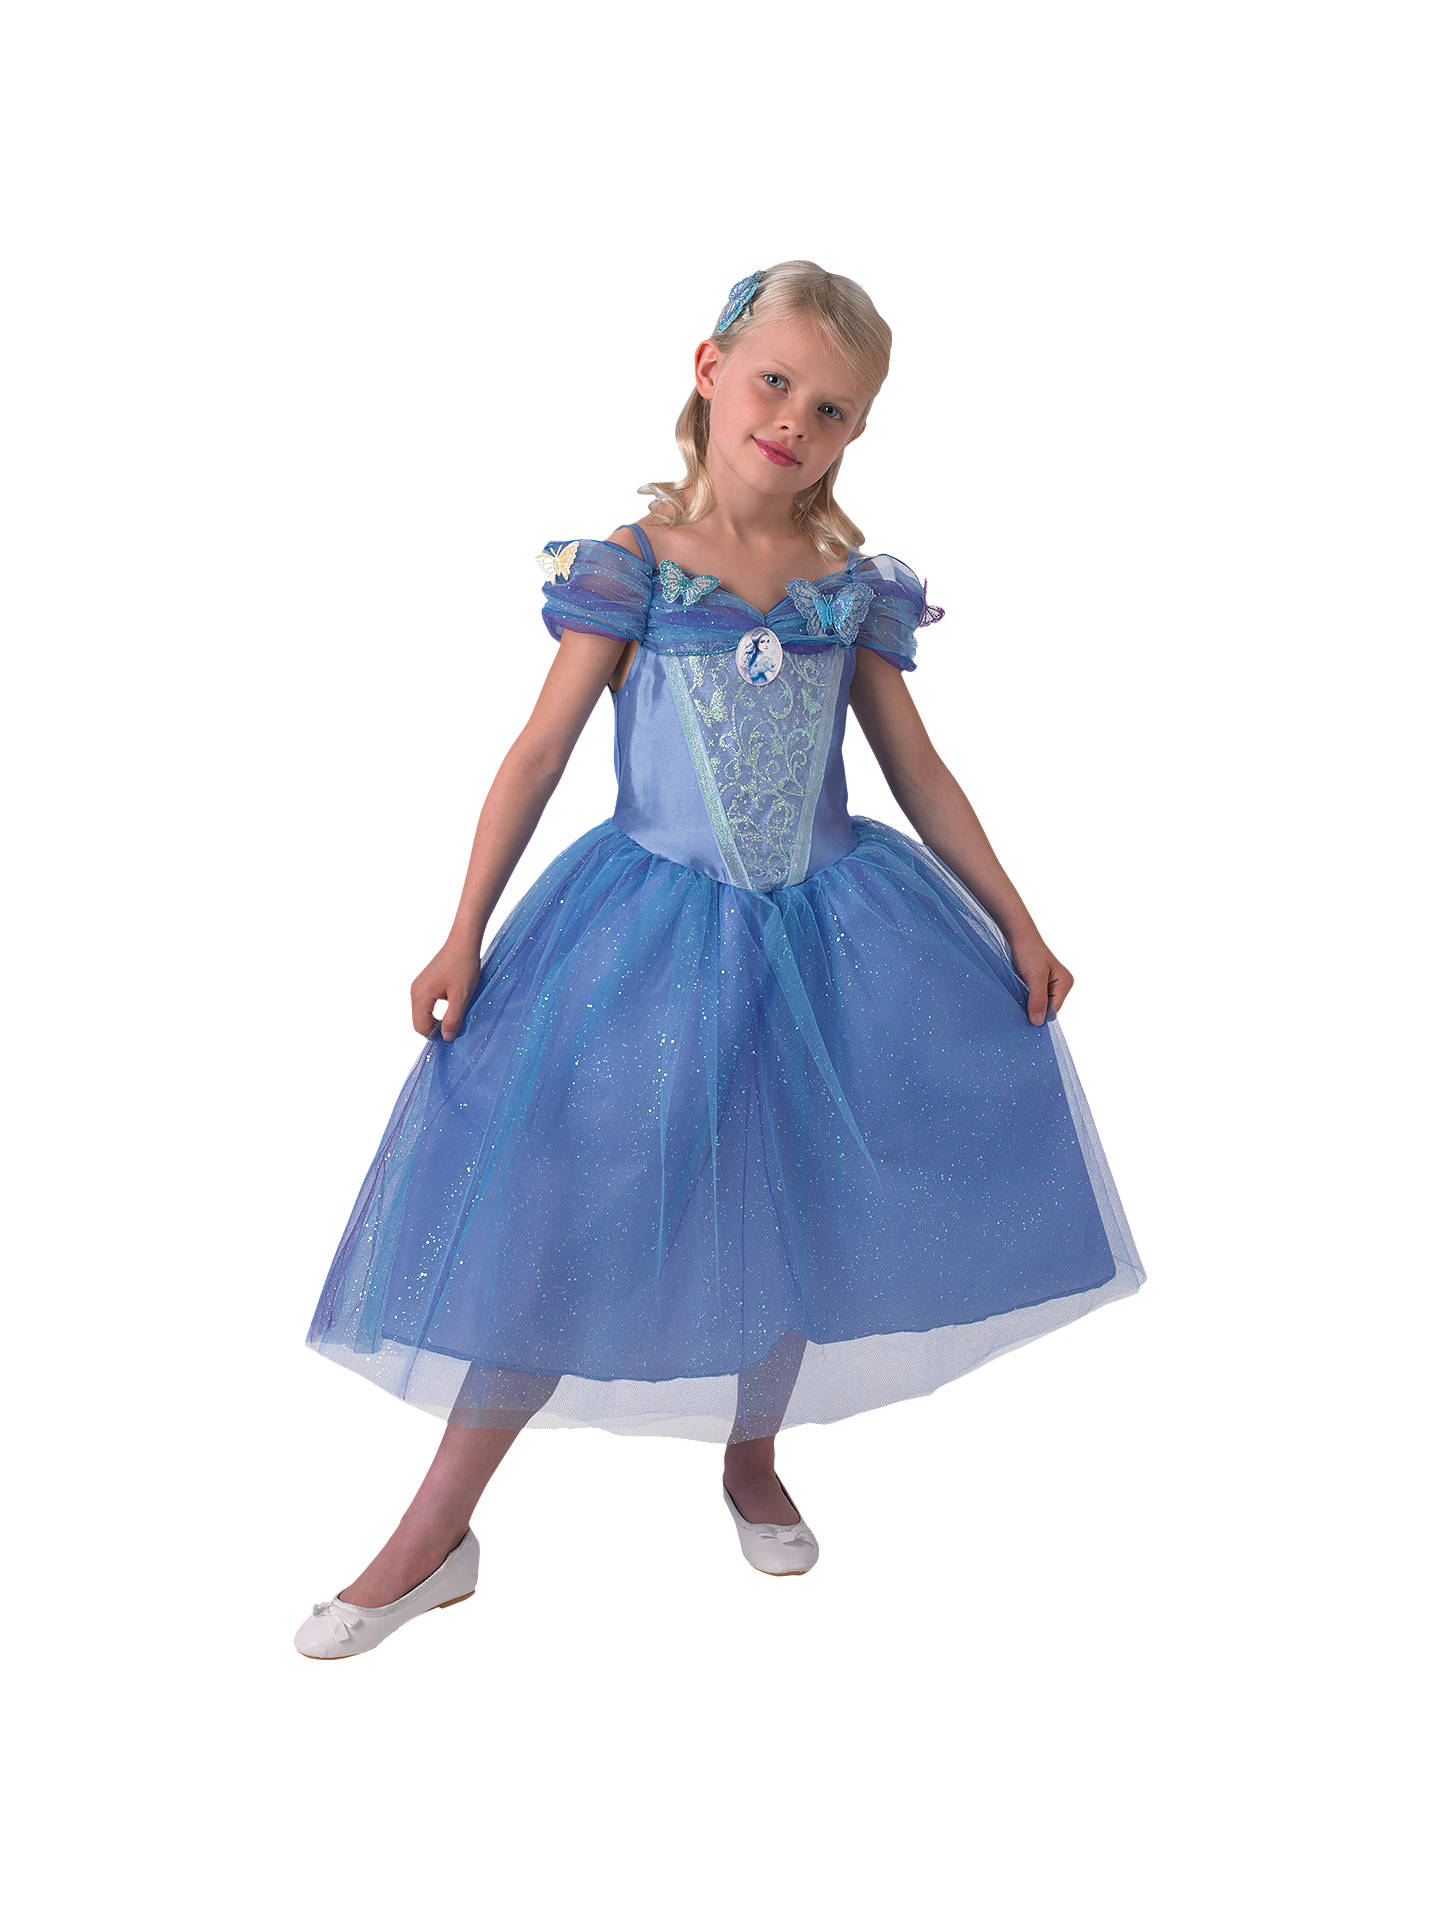 Disney Cinderella Ball Gown Dressing-Up Costume at John Lewis & Partners